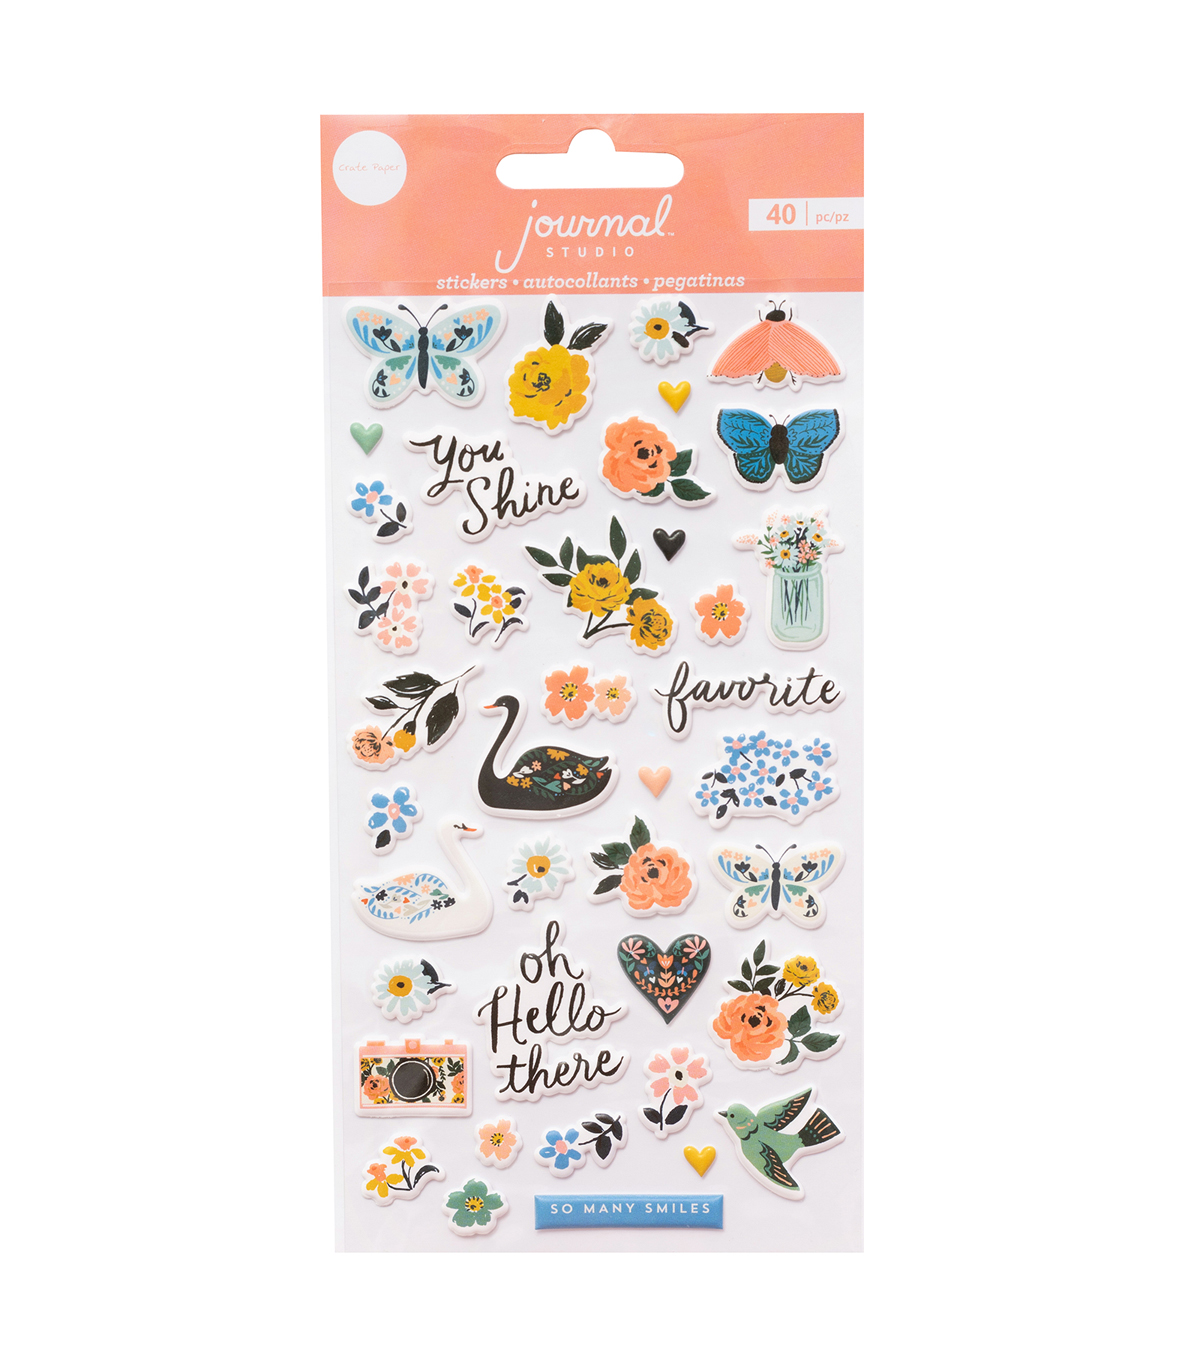 Crate Paper Journal Studio 40 pk Puffy Stickers-Swan